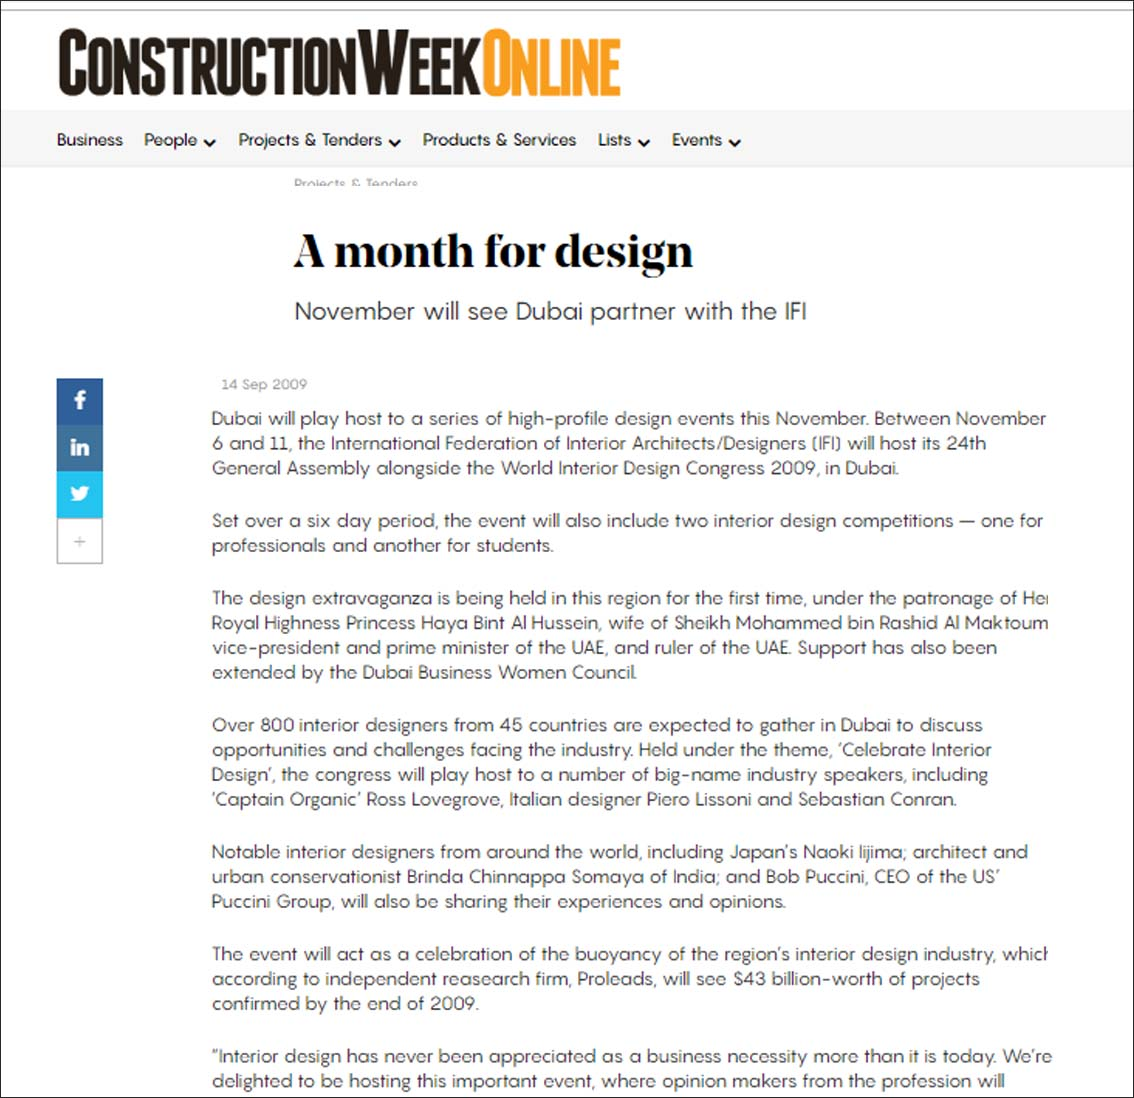 A Month for design,Construction Week Online - September 2009